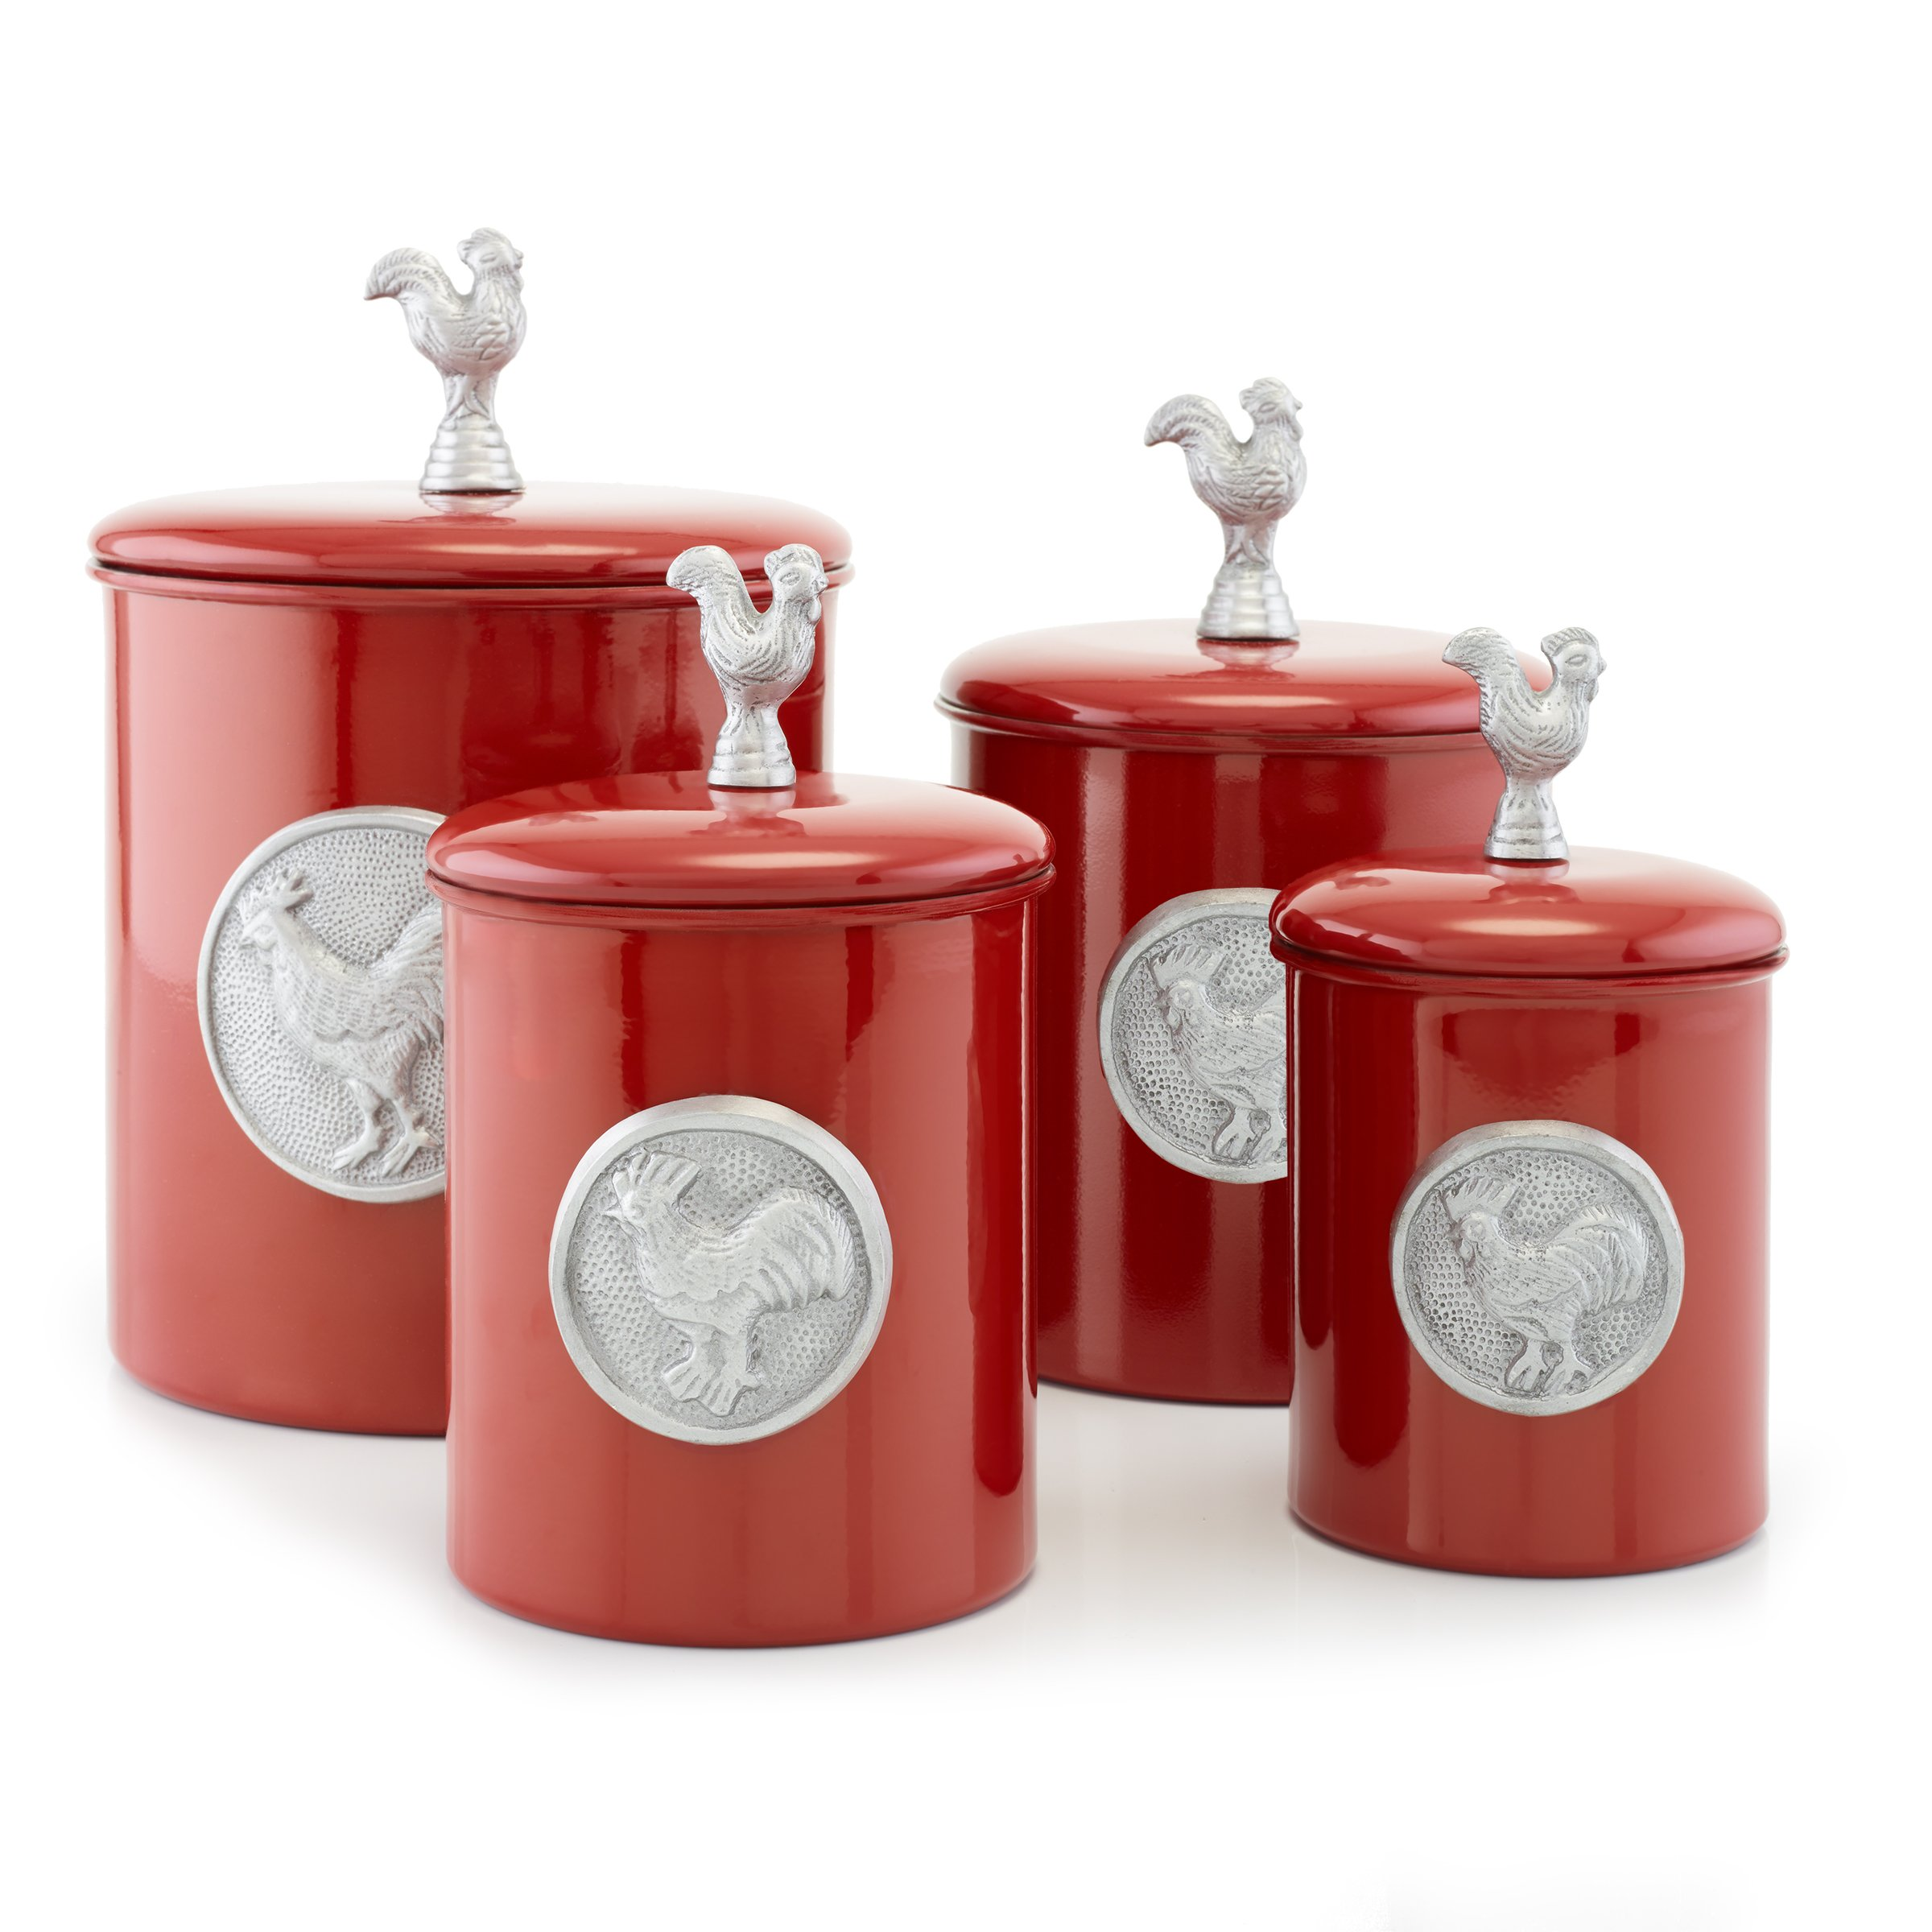 Old Dutch 4Piece Rooster Canister Set, Red by Old Dutch